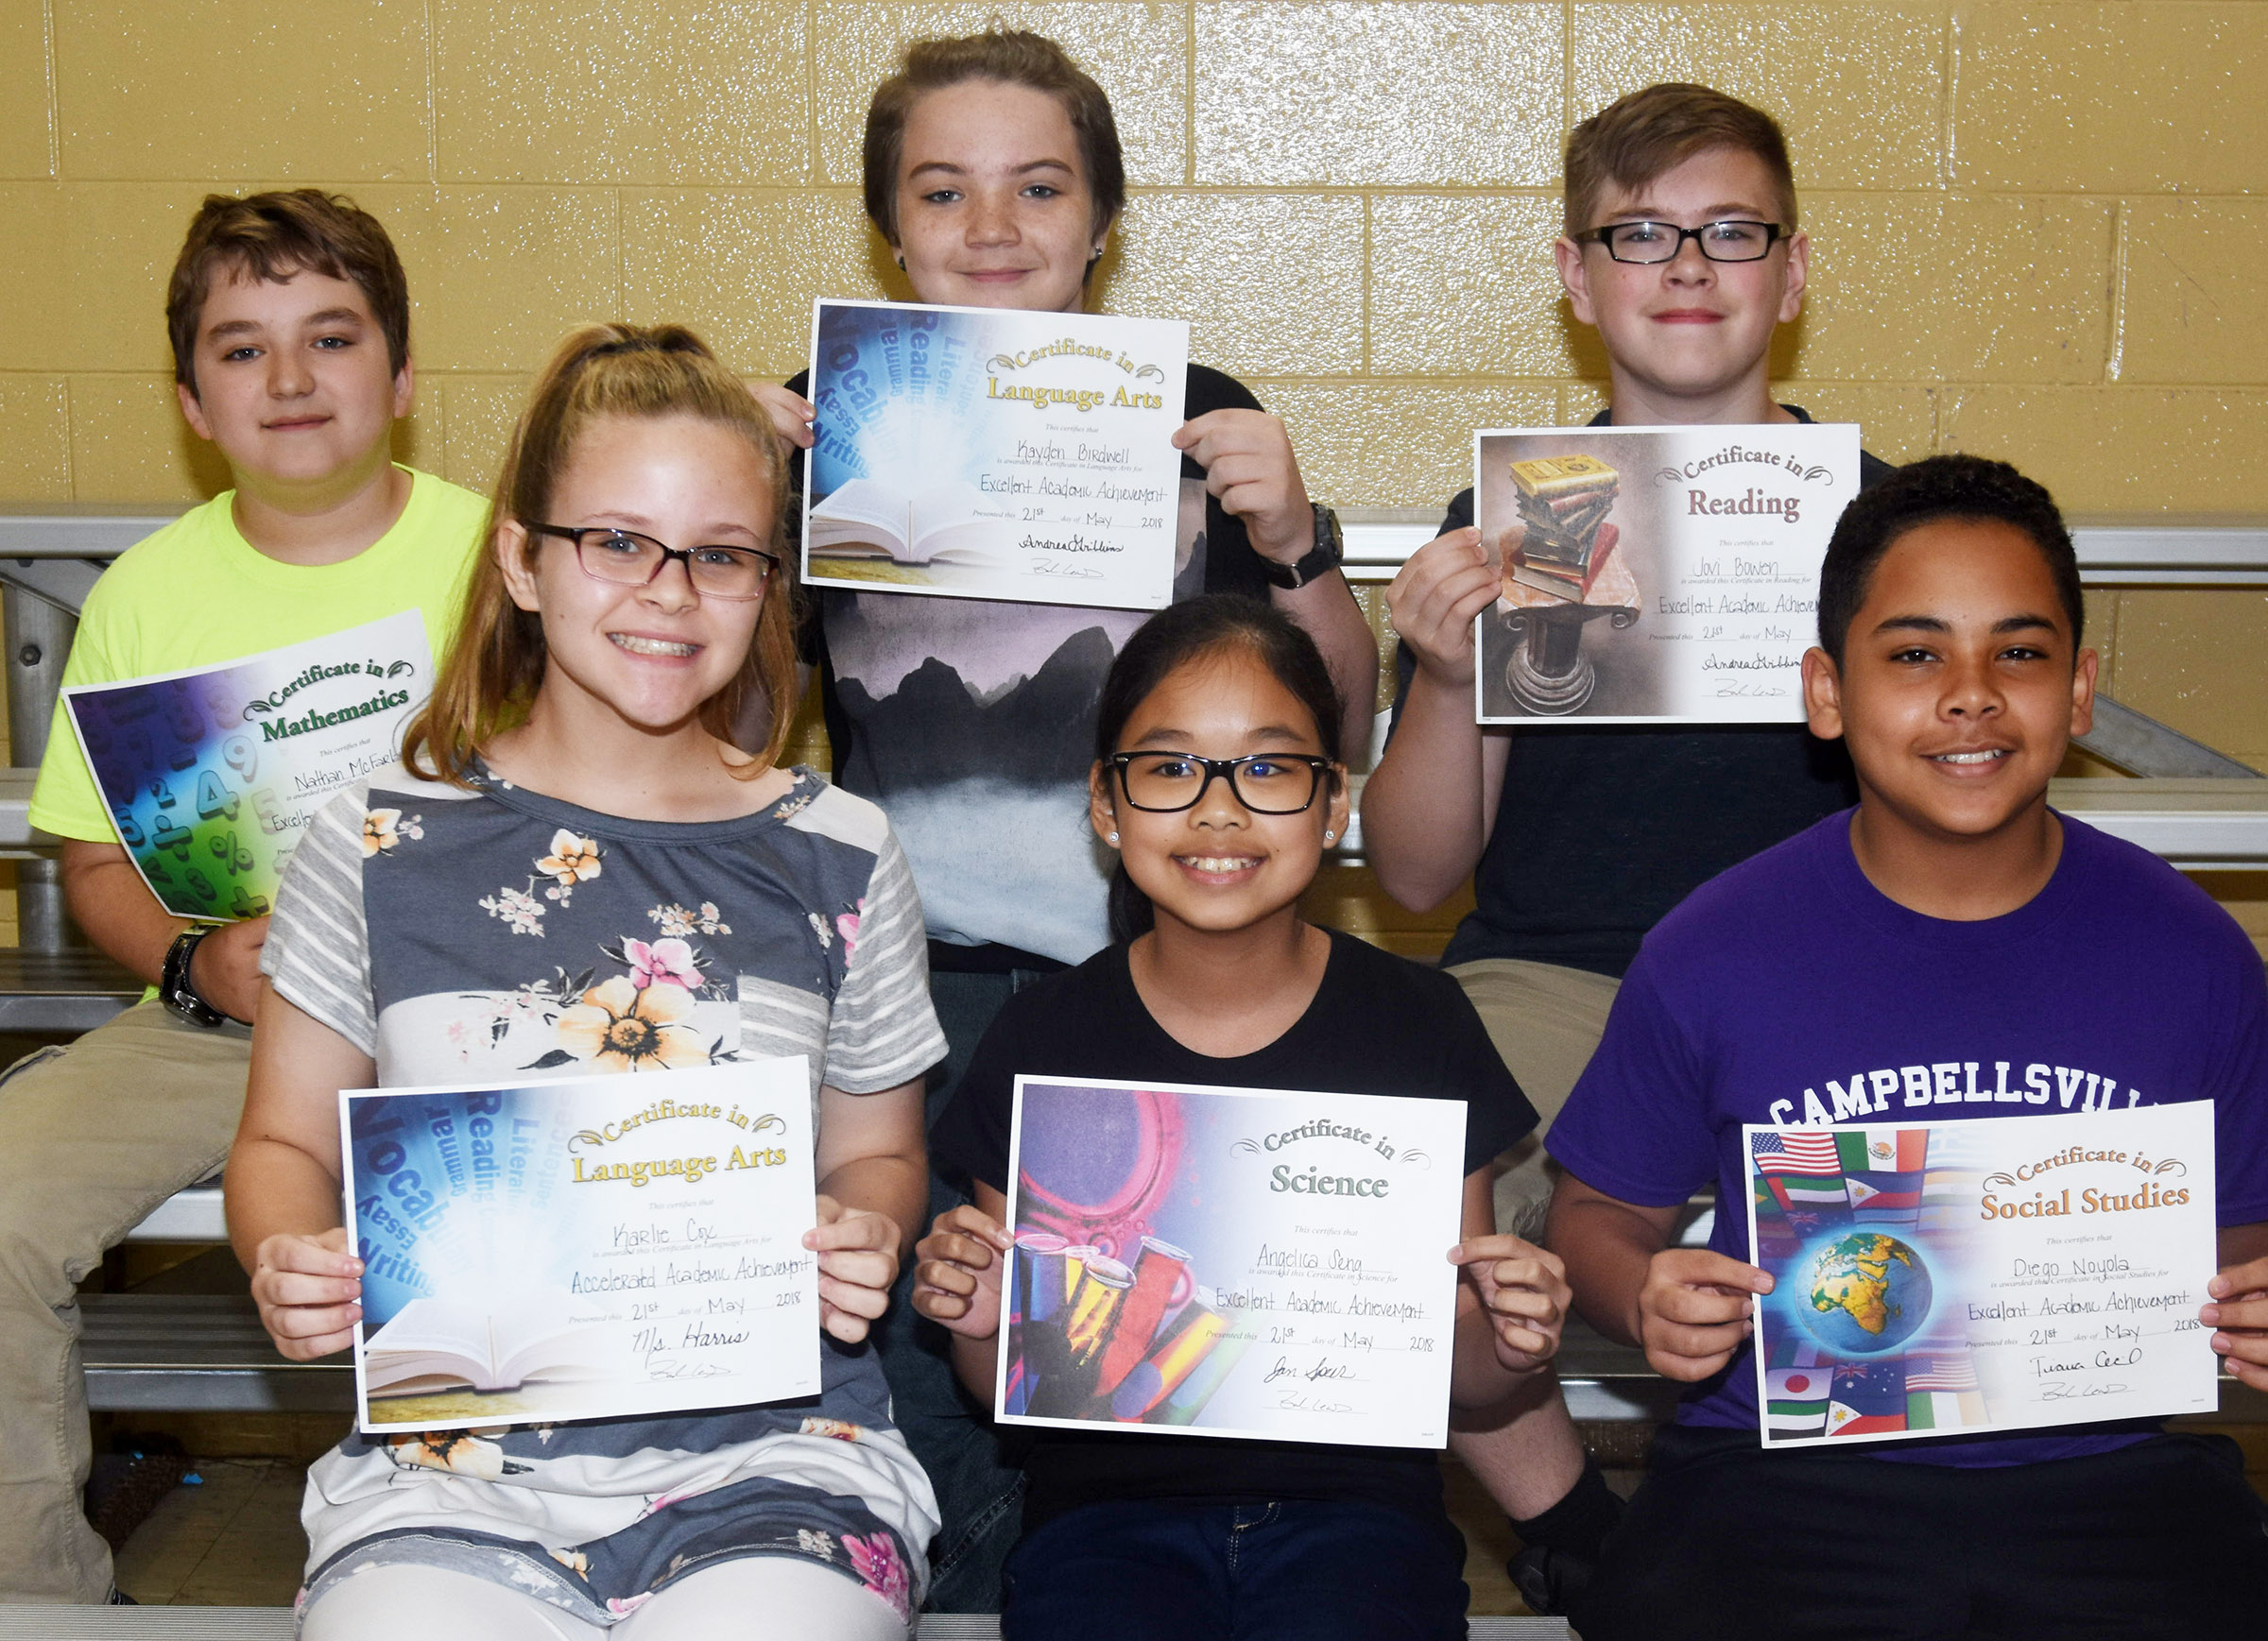 Sixth-grade subject award winners are, from left, front, Karlie Cox, accelerated language arts; Angelica Seng, science; and Diego Noyola, social studies. Back, Nathan McFarland, math; Kayden Birdwell, language arts; and Jovi Bowen, reading.